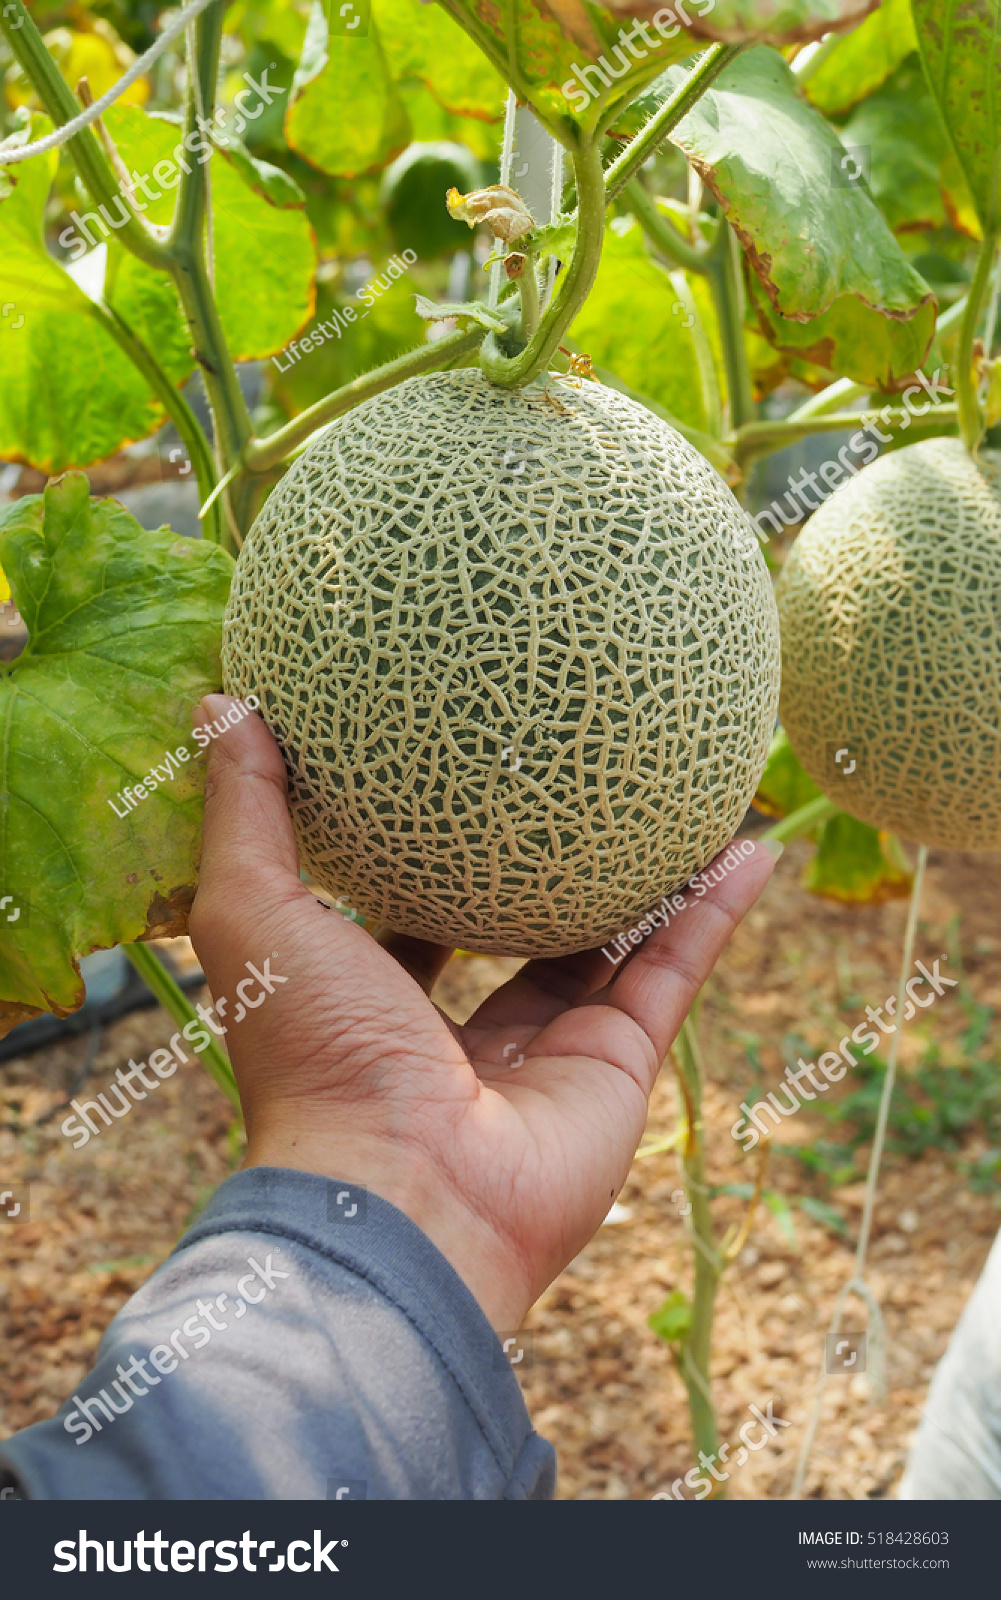 Cantaloupe Fresh Melon Hand On Tree Stock Photo Edit Now 518428603 See more ideas about cantaloupe, cantaloupe and melon, cottage names. shutterstock